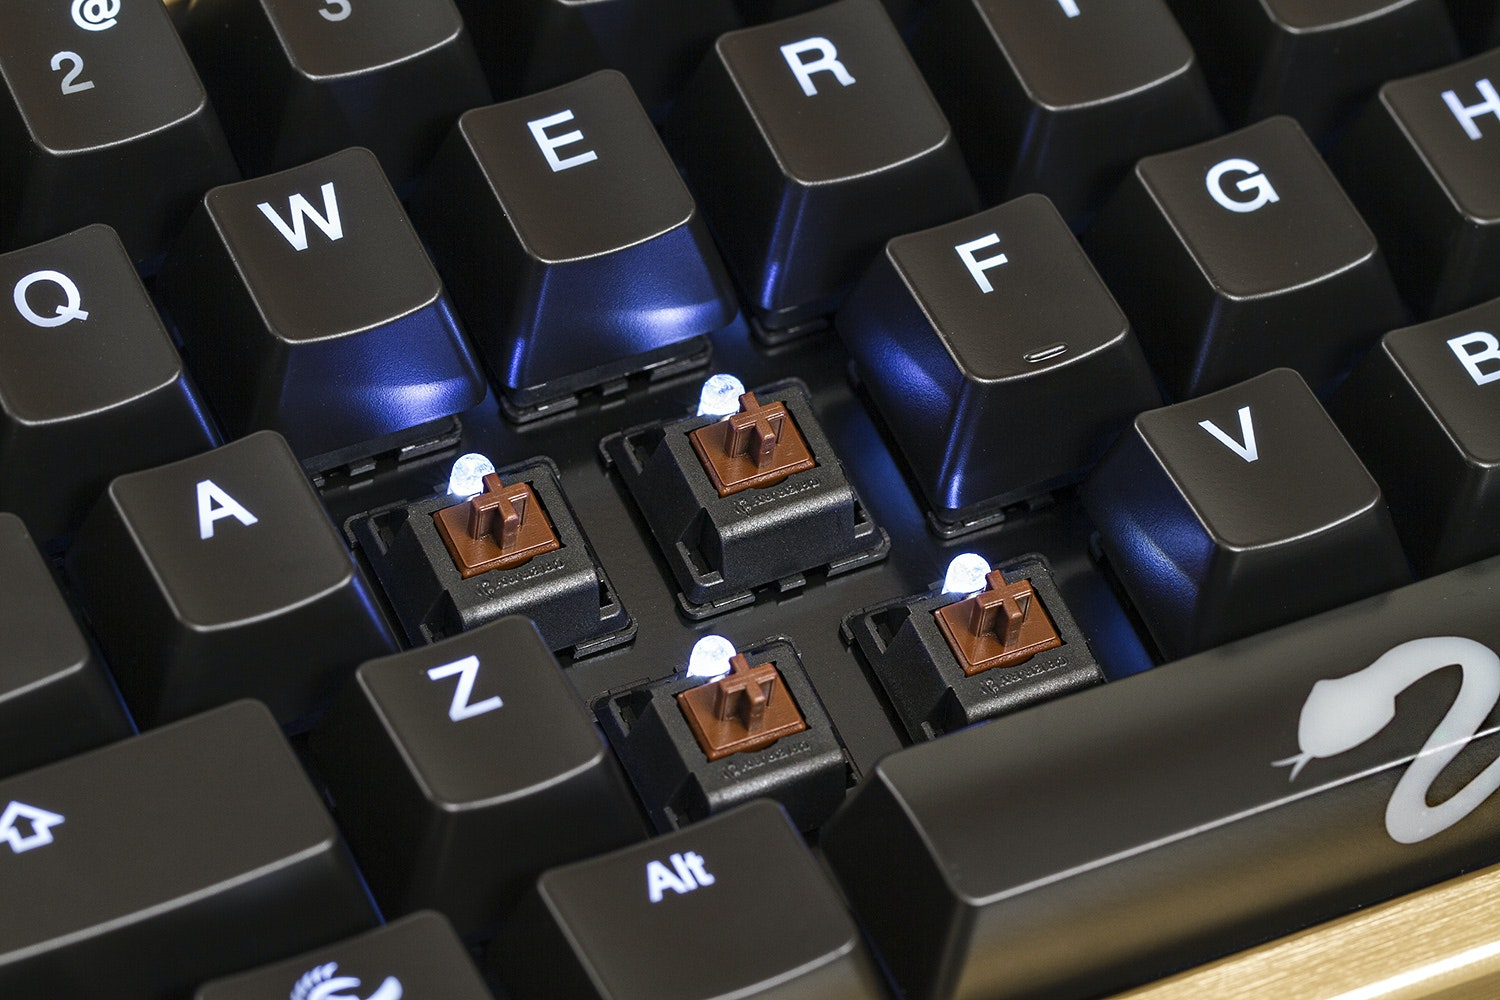 Ducky Shine 3 Gold Edition with Ducky Wrist Rest